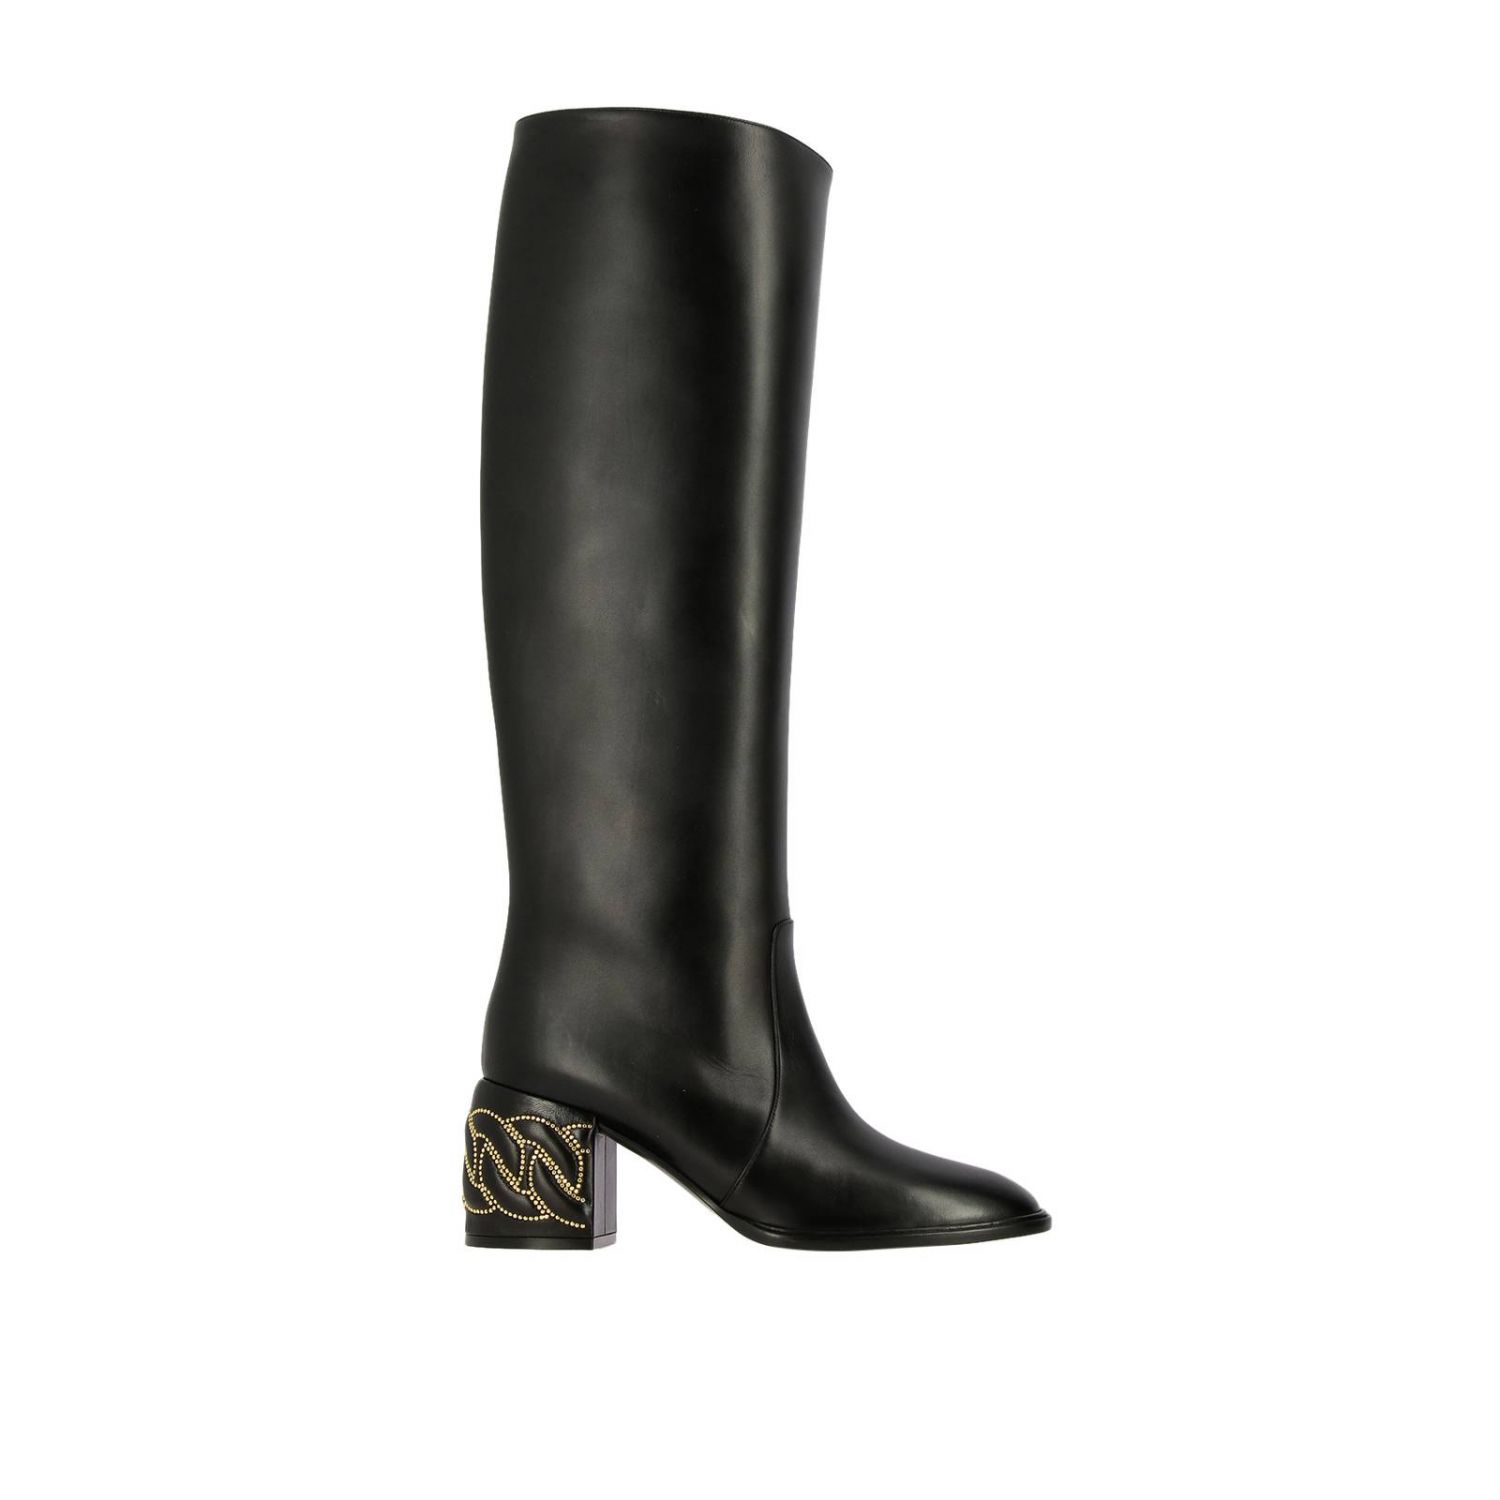 Boots women Casadei black 1